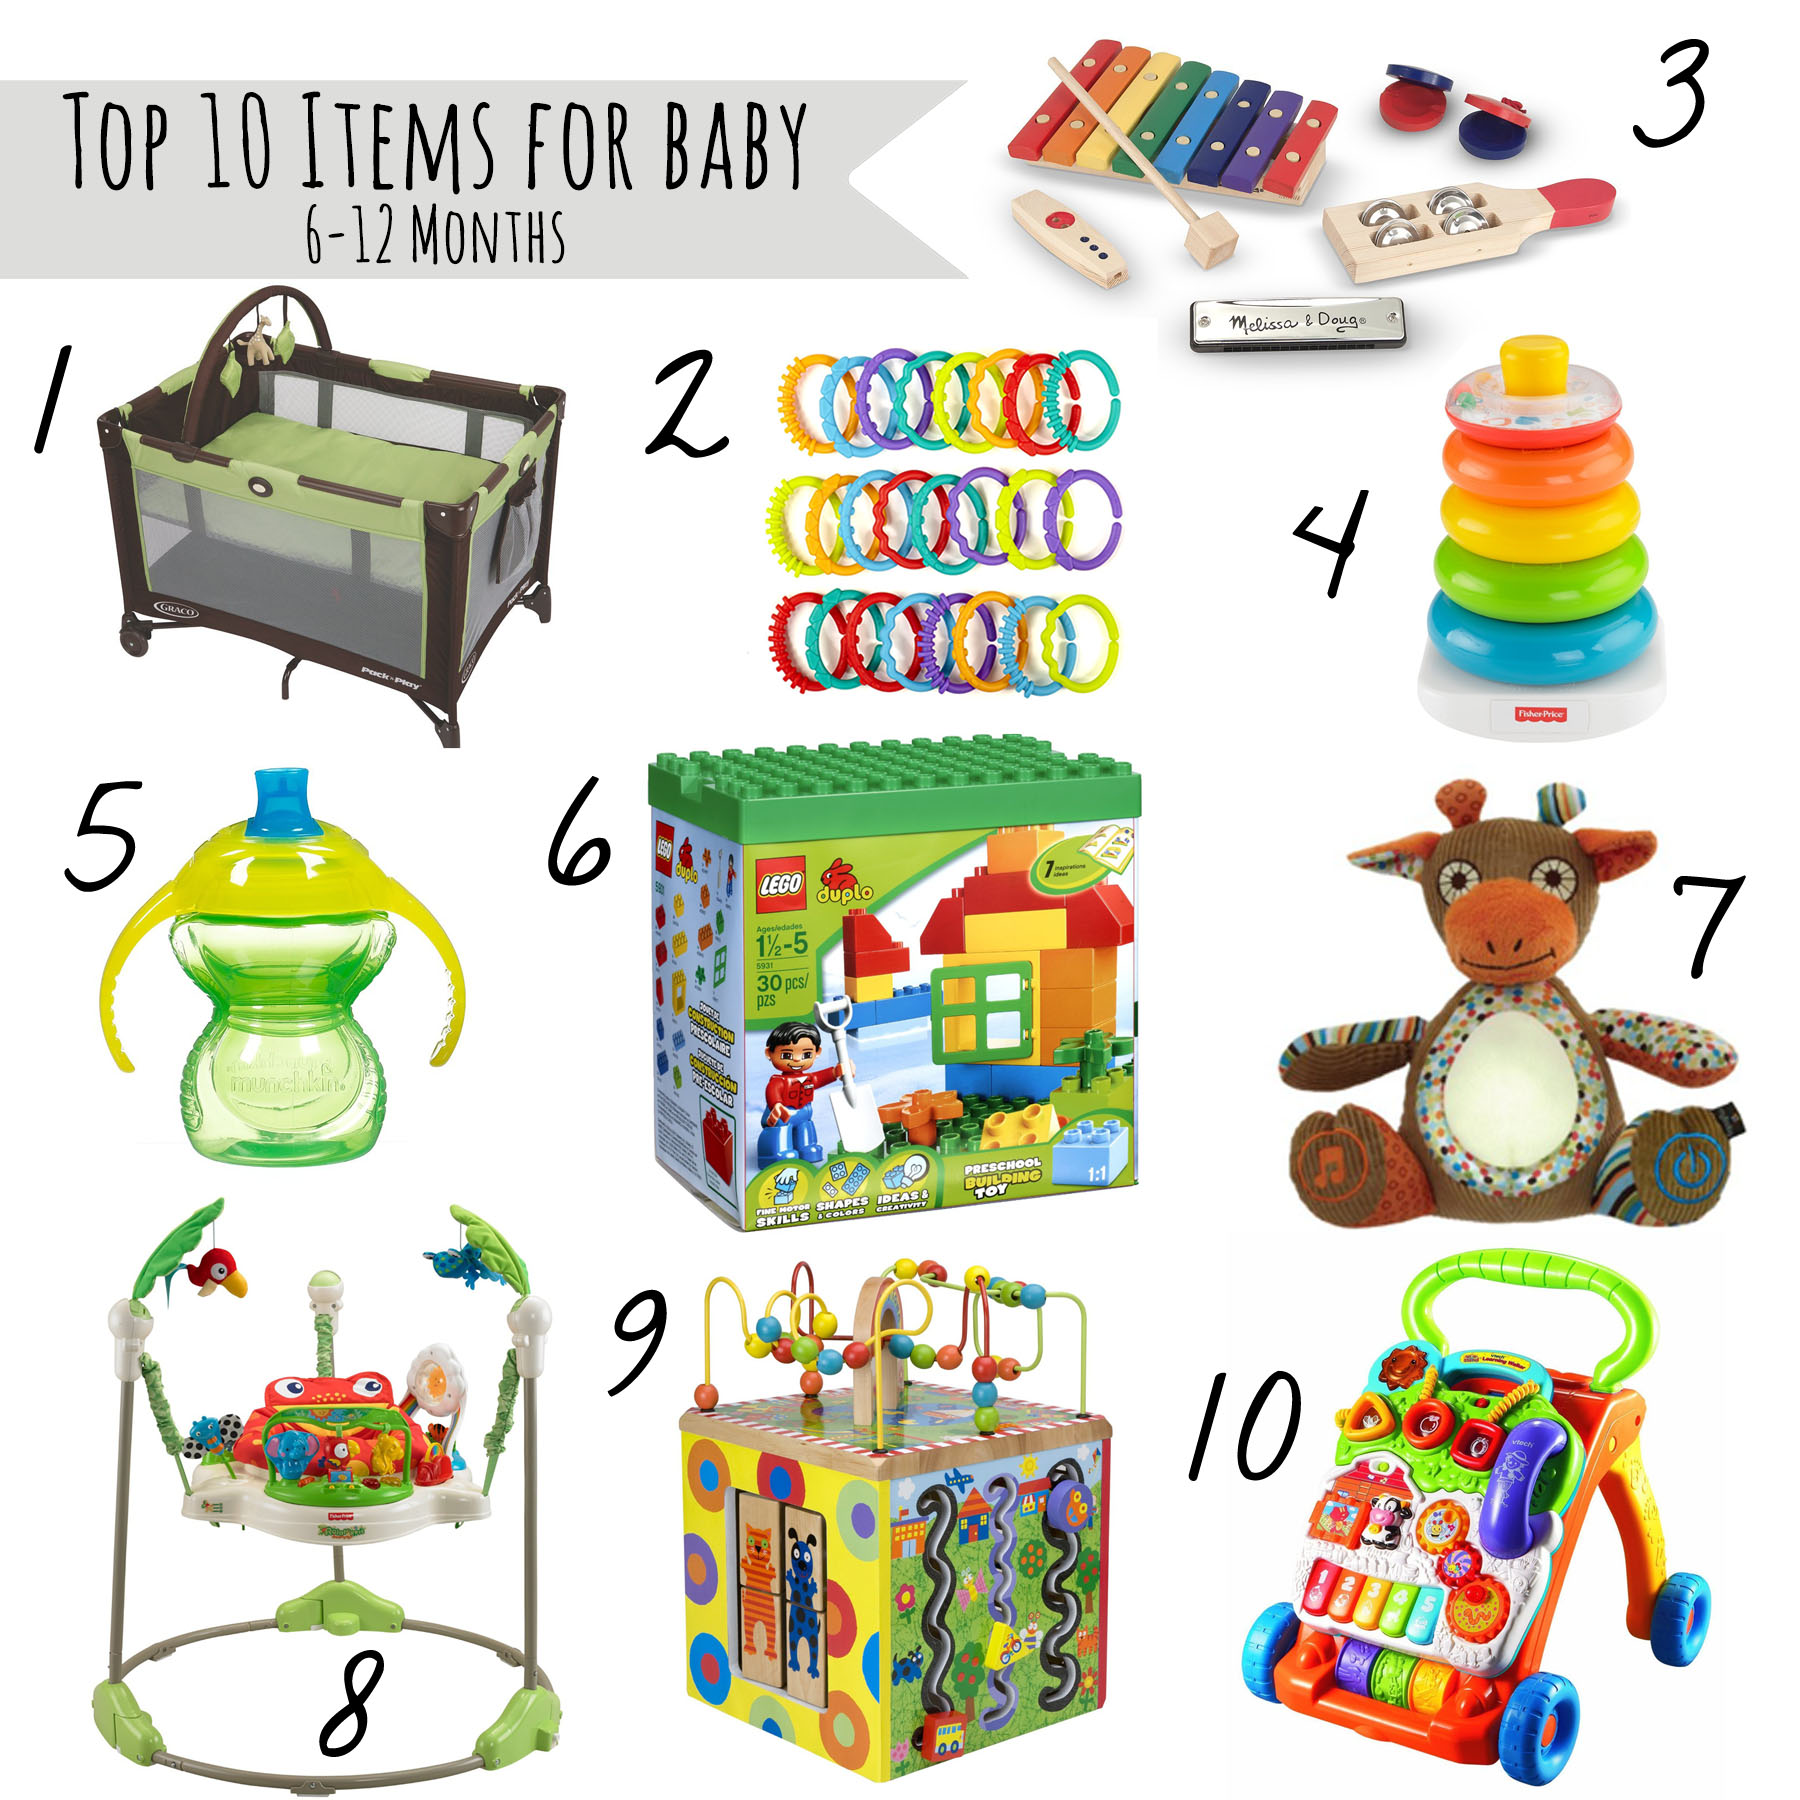 Top 10 Must Haves for Babies 6 12 Month Old Our Handcrafted Life